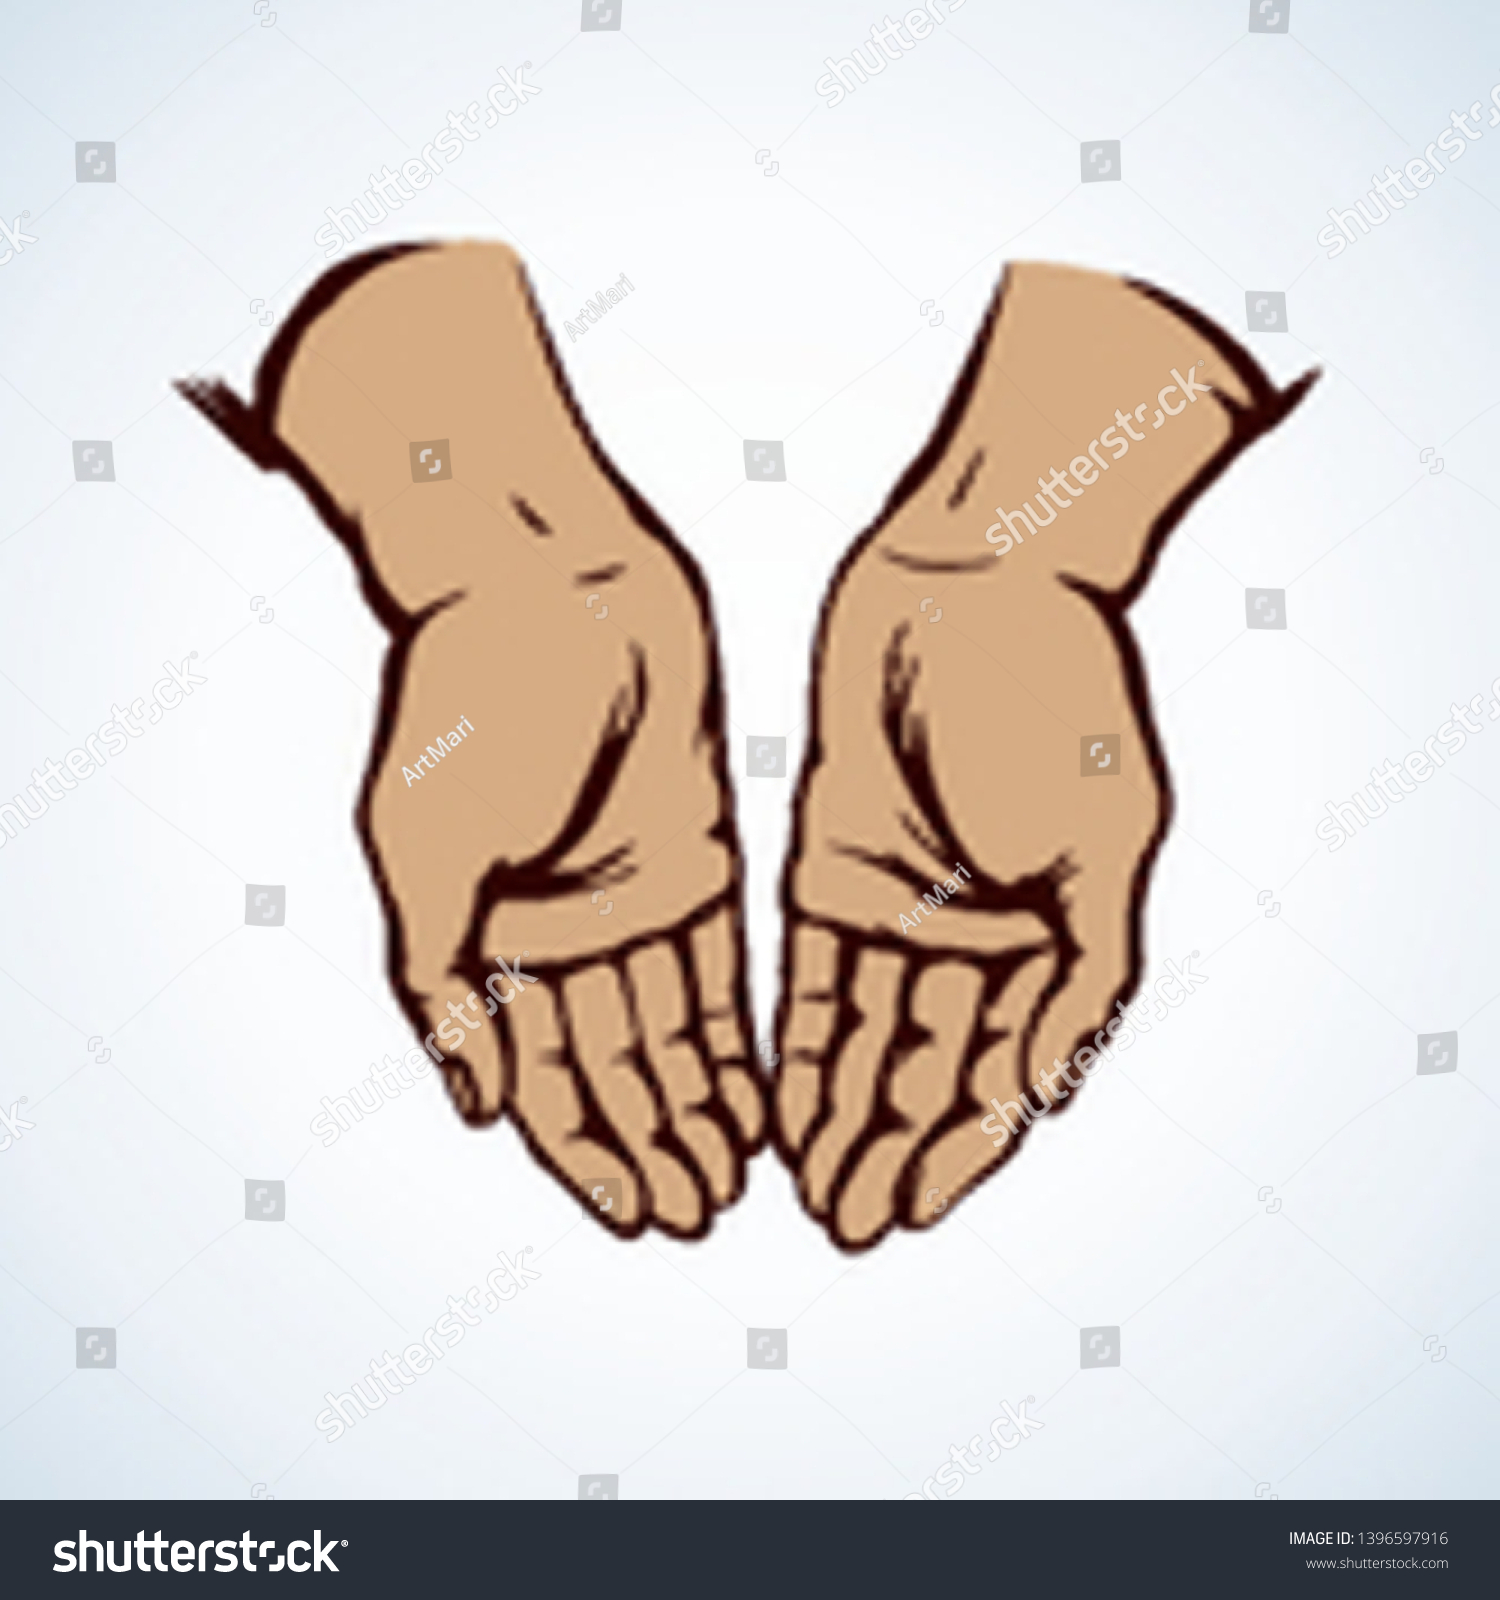 Sin Body Palm Help Praise On Stock Vector Royalty Free 1396597916